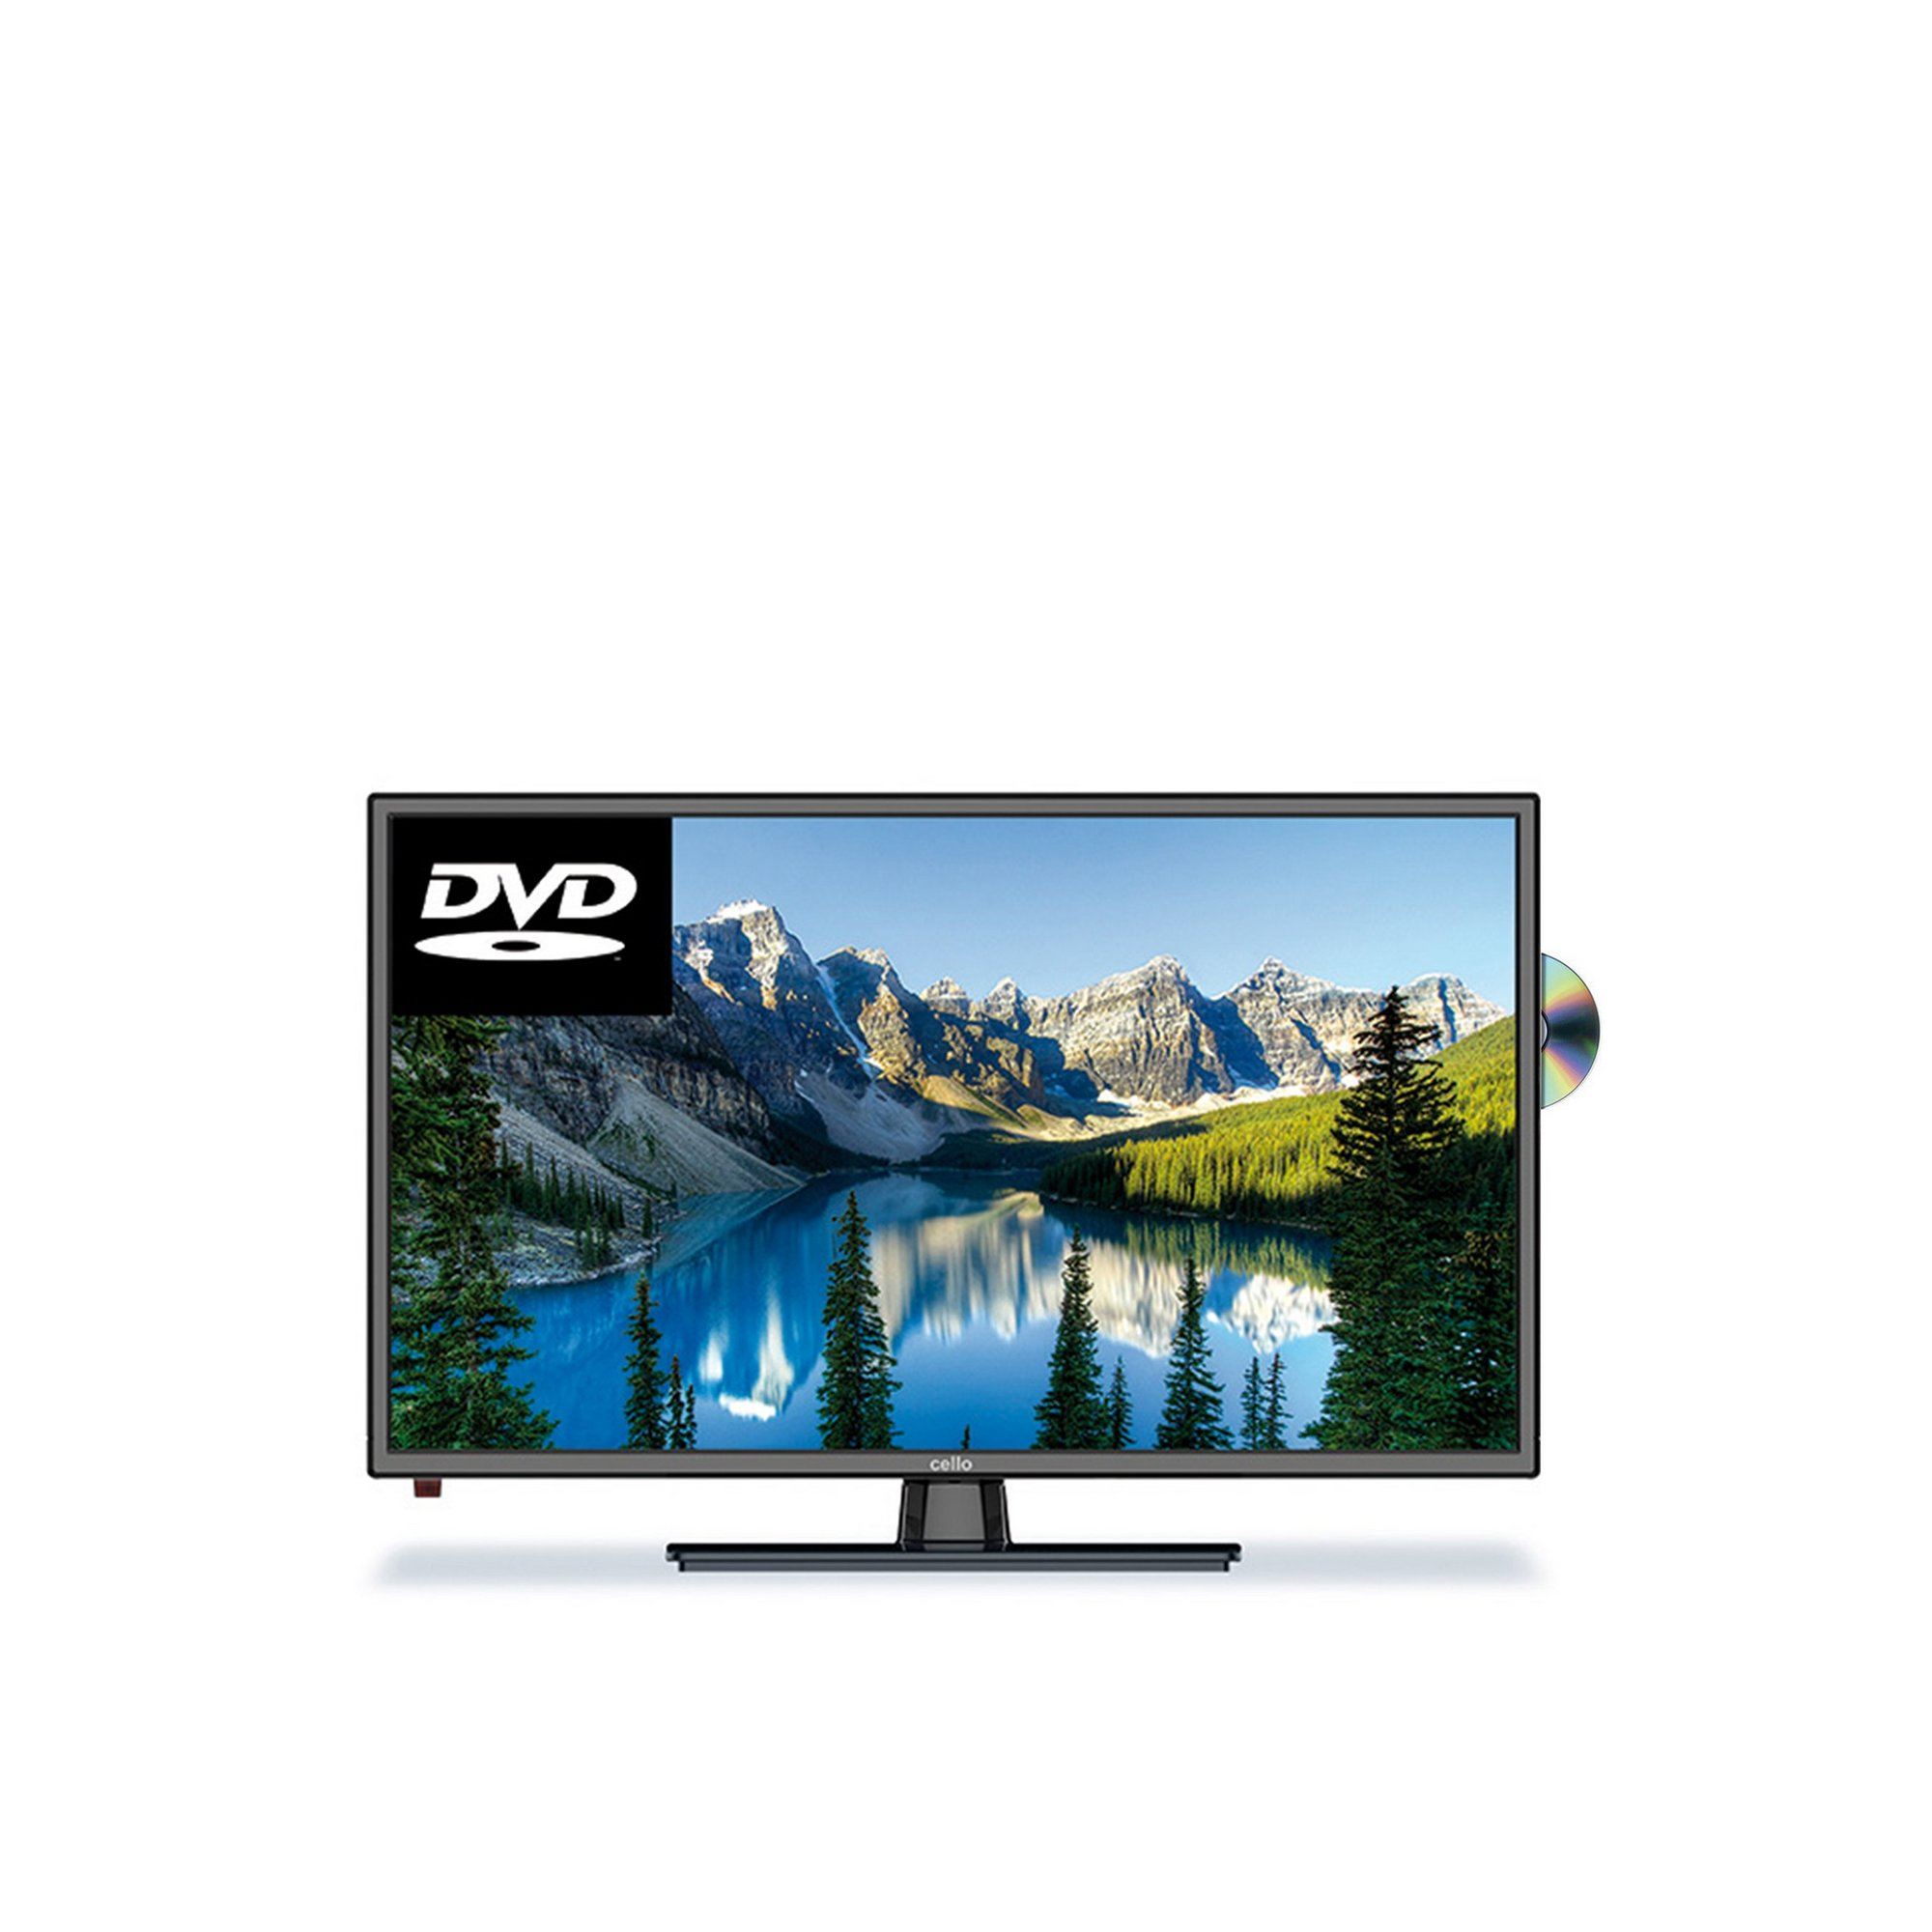 Image of Cello 24 Inch C24230F LED TV/DVD Combination